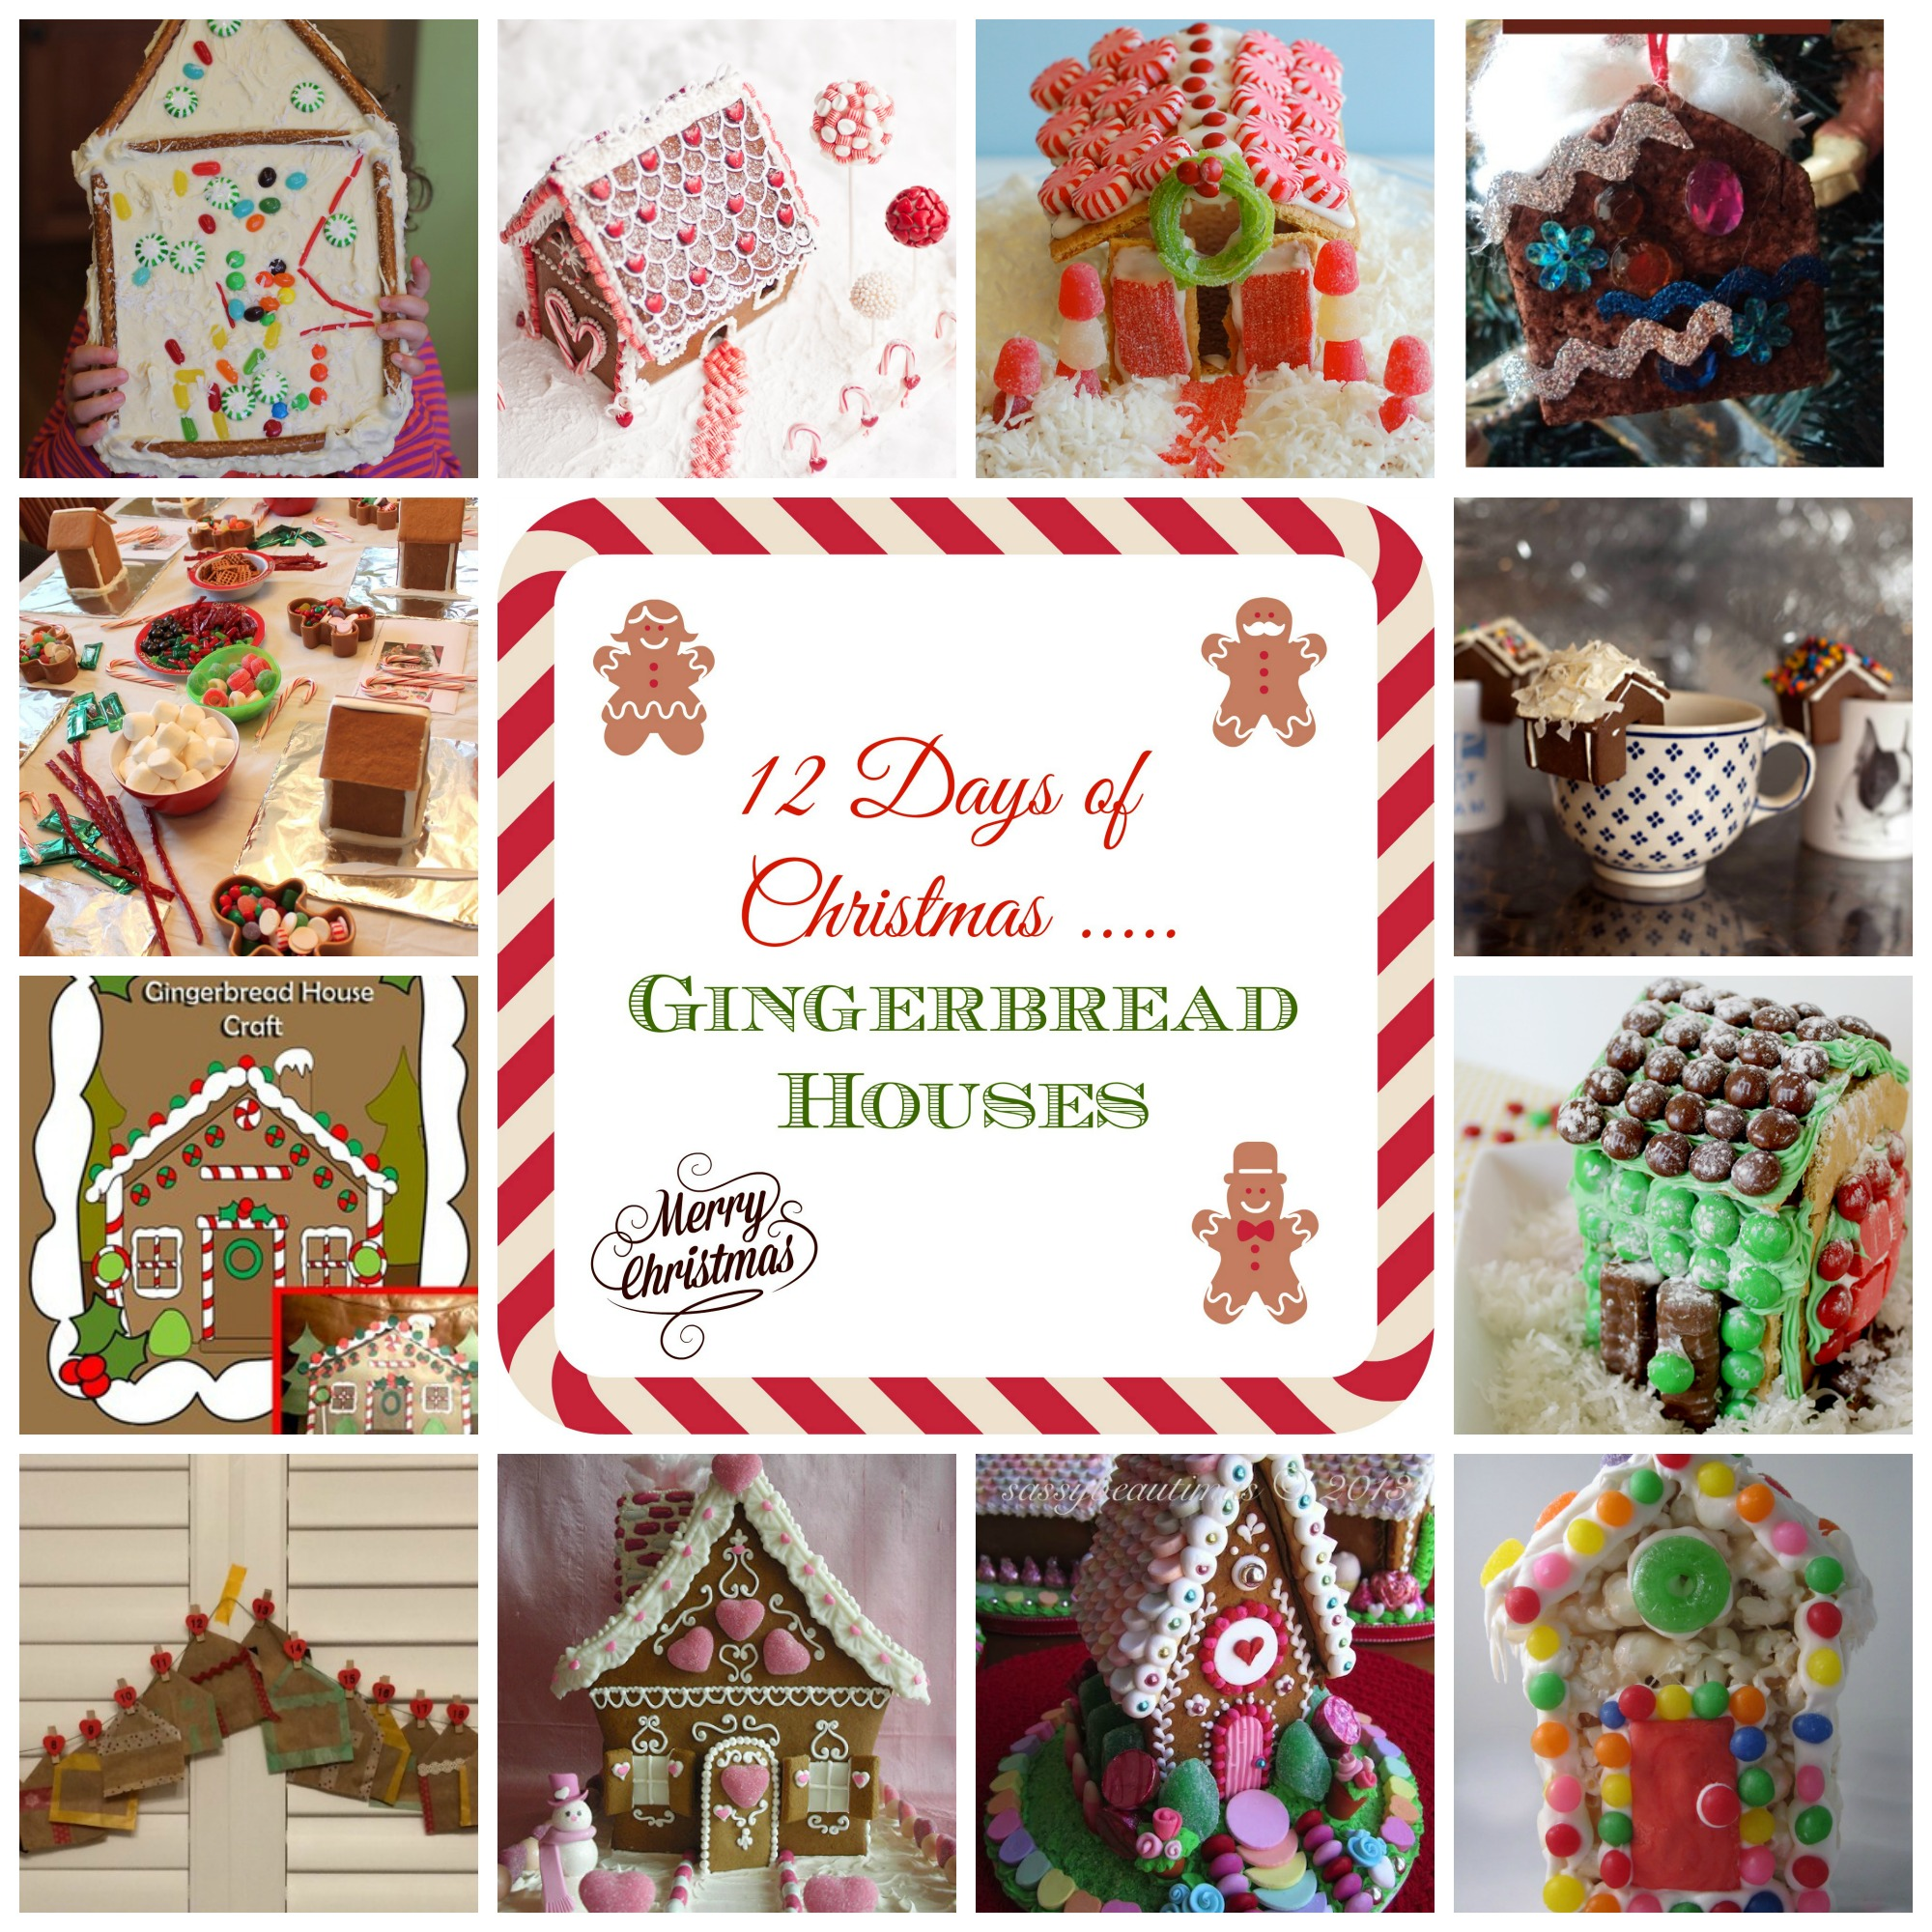 12 Days of Christmas – Gingerbread